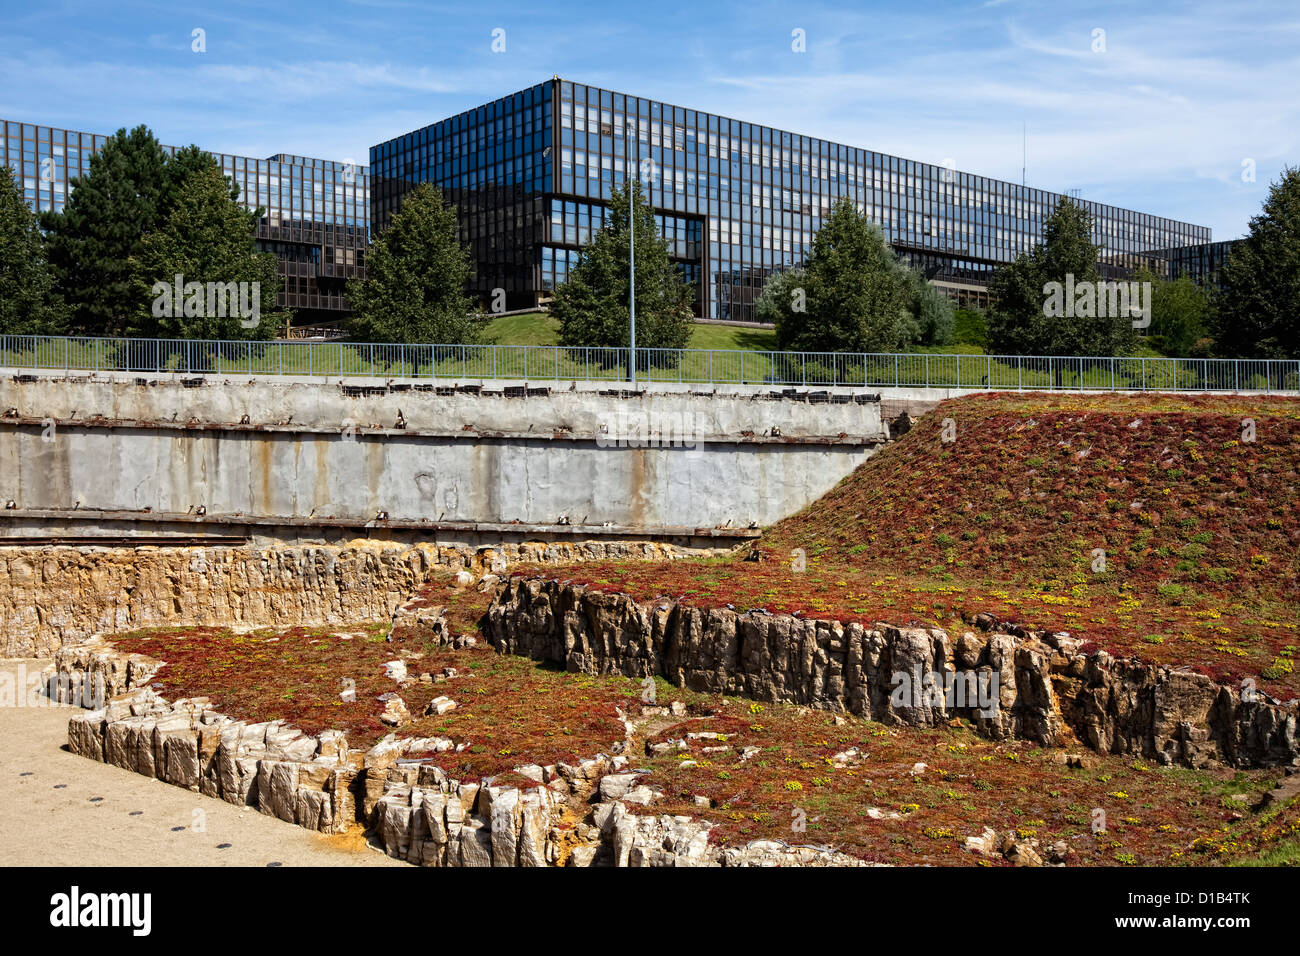 European Commission, Jean Monnet Building, European quarter, Kirchberg plateau, Luxembourg City, Europe - Stock Image